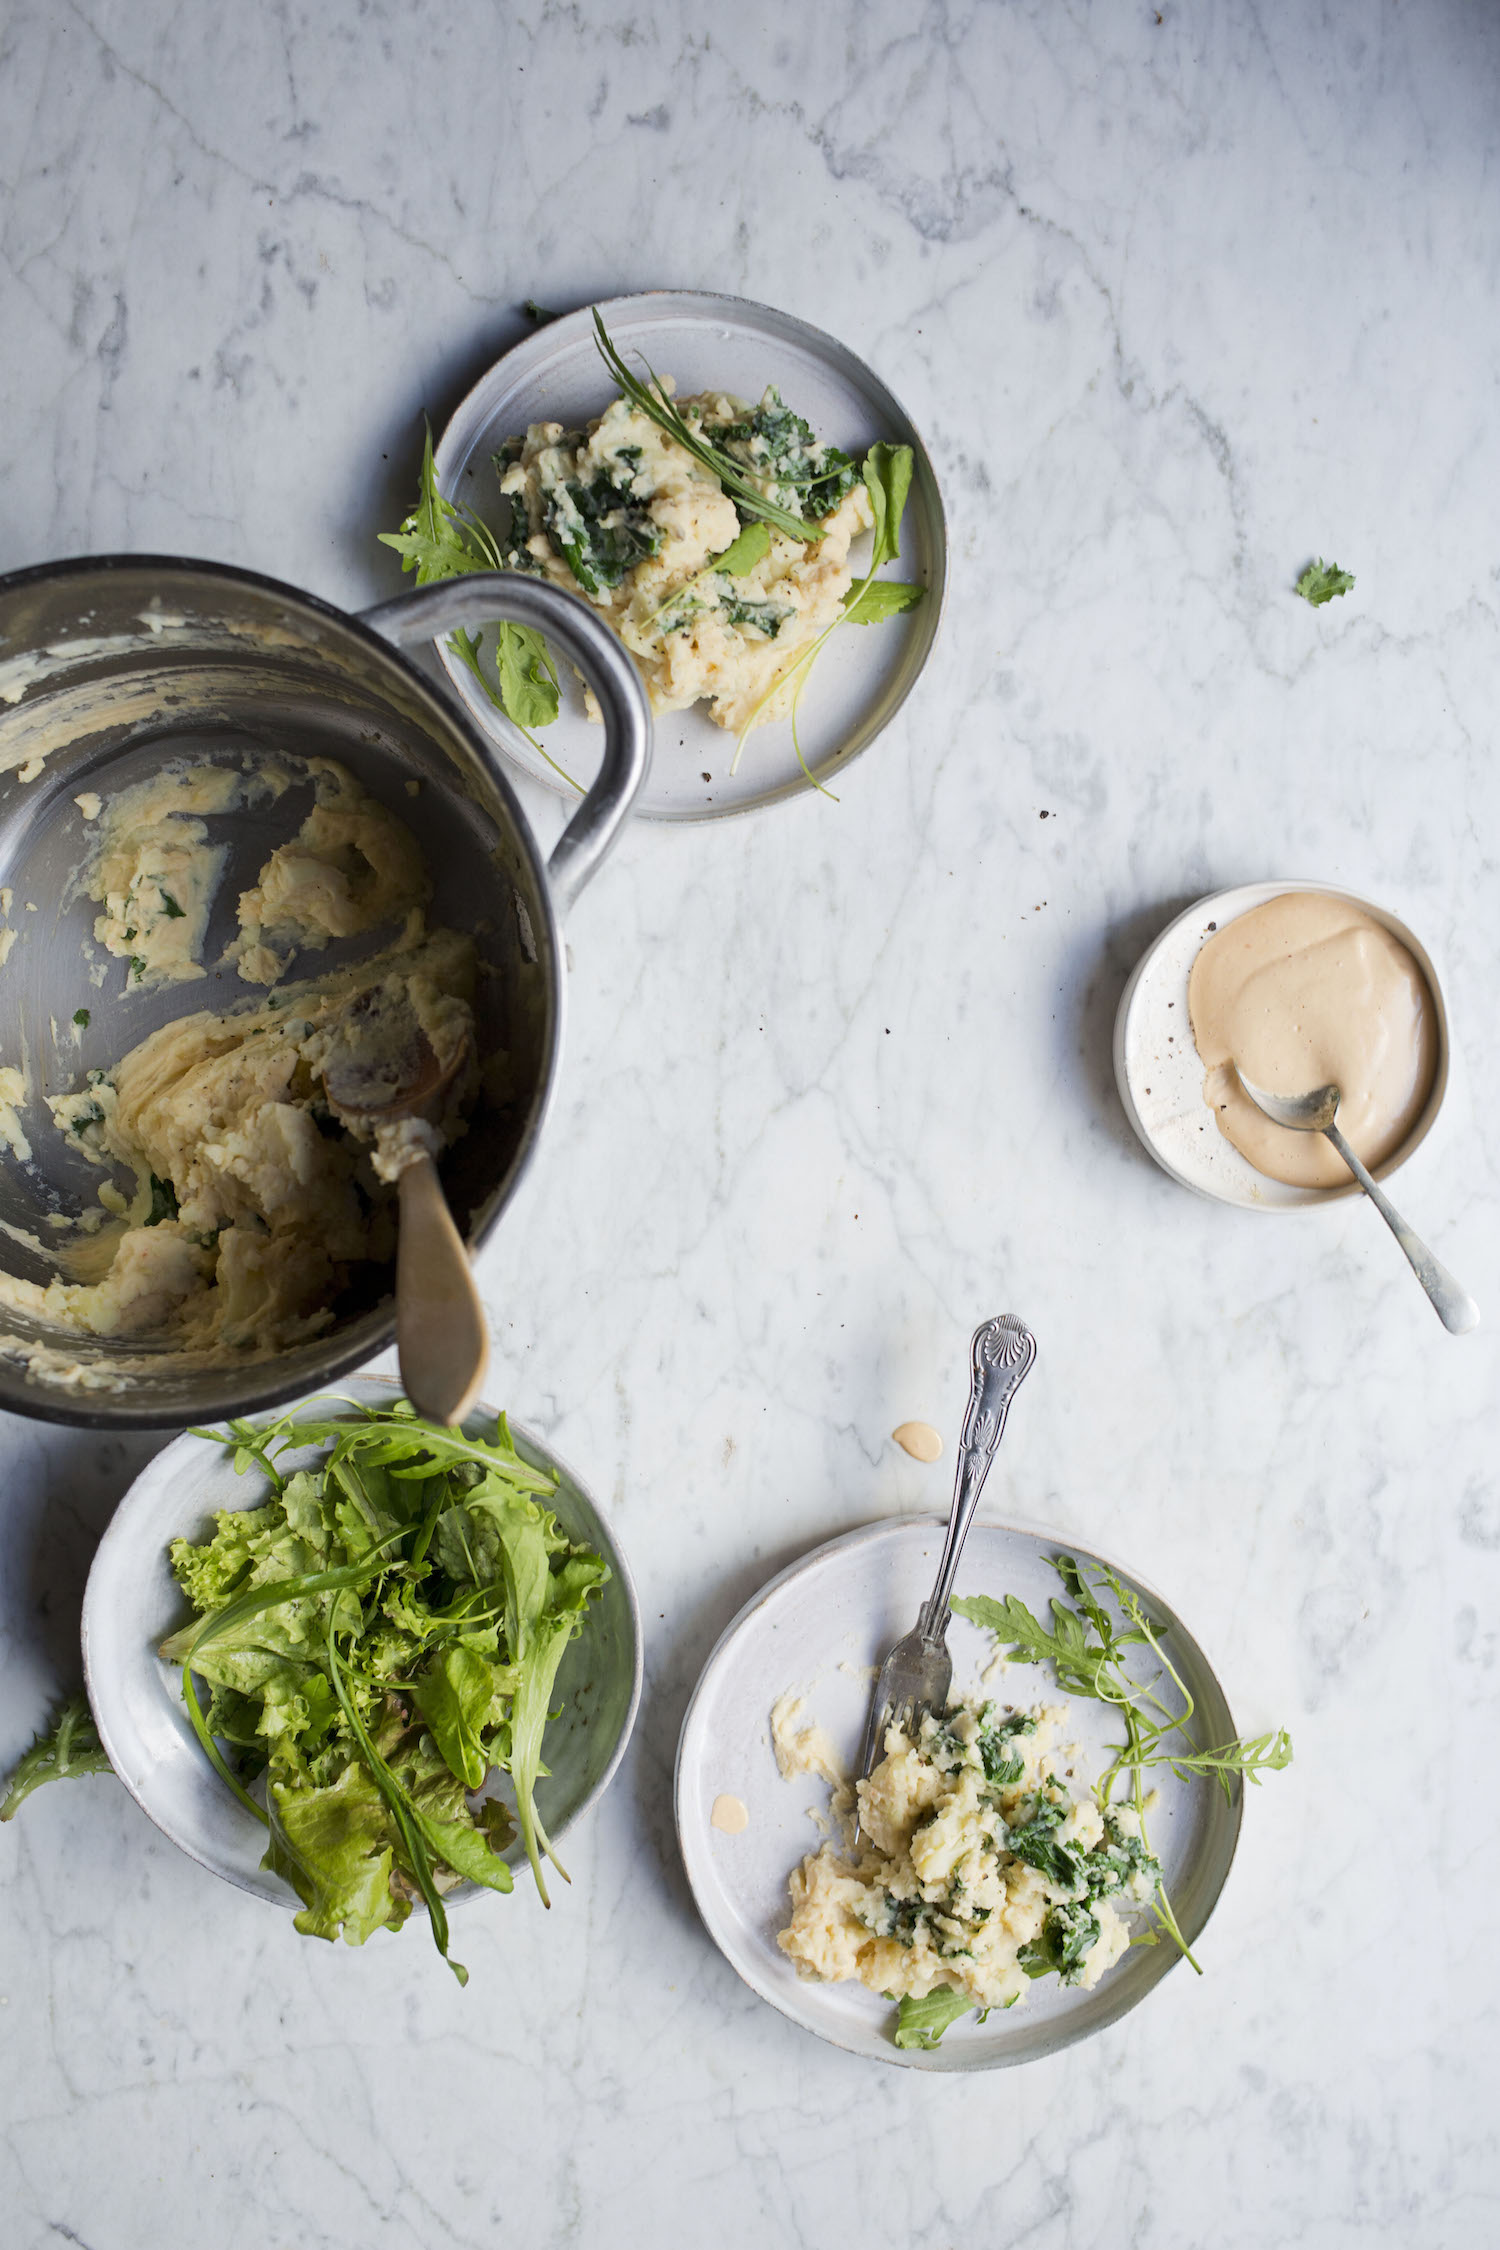 CREAMY MASHED POTATOES WITH WILTED KALE AND CASHEW CHEESE by Let It Be Cosy